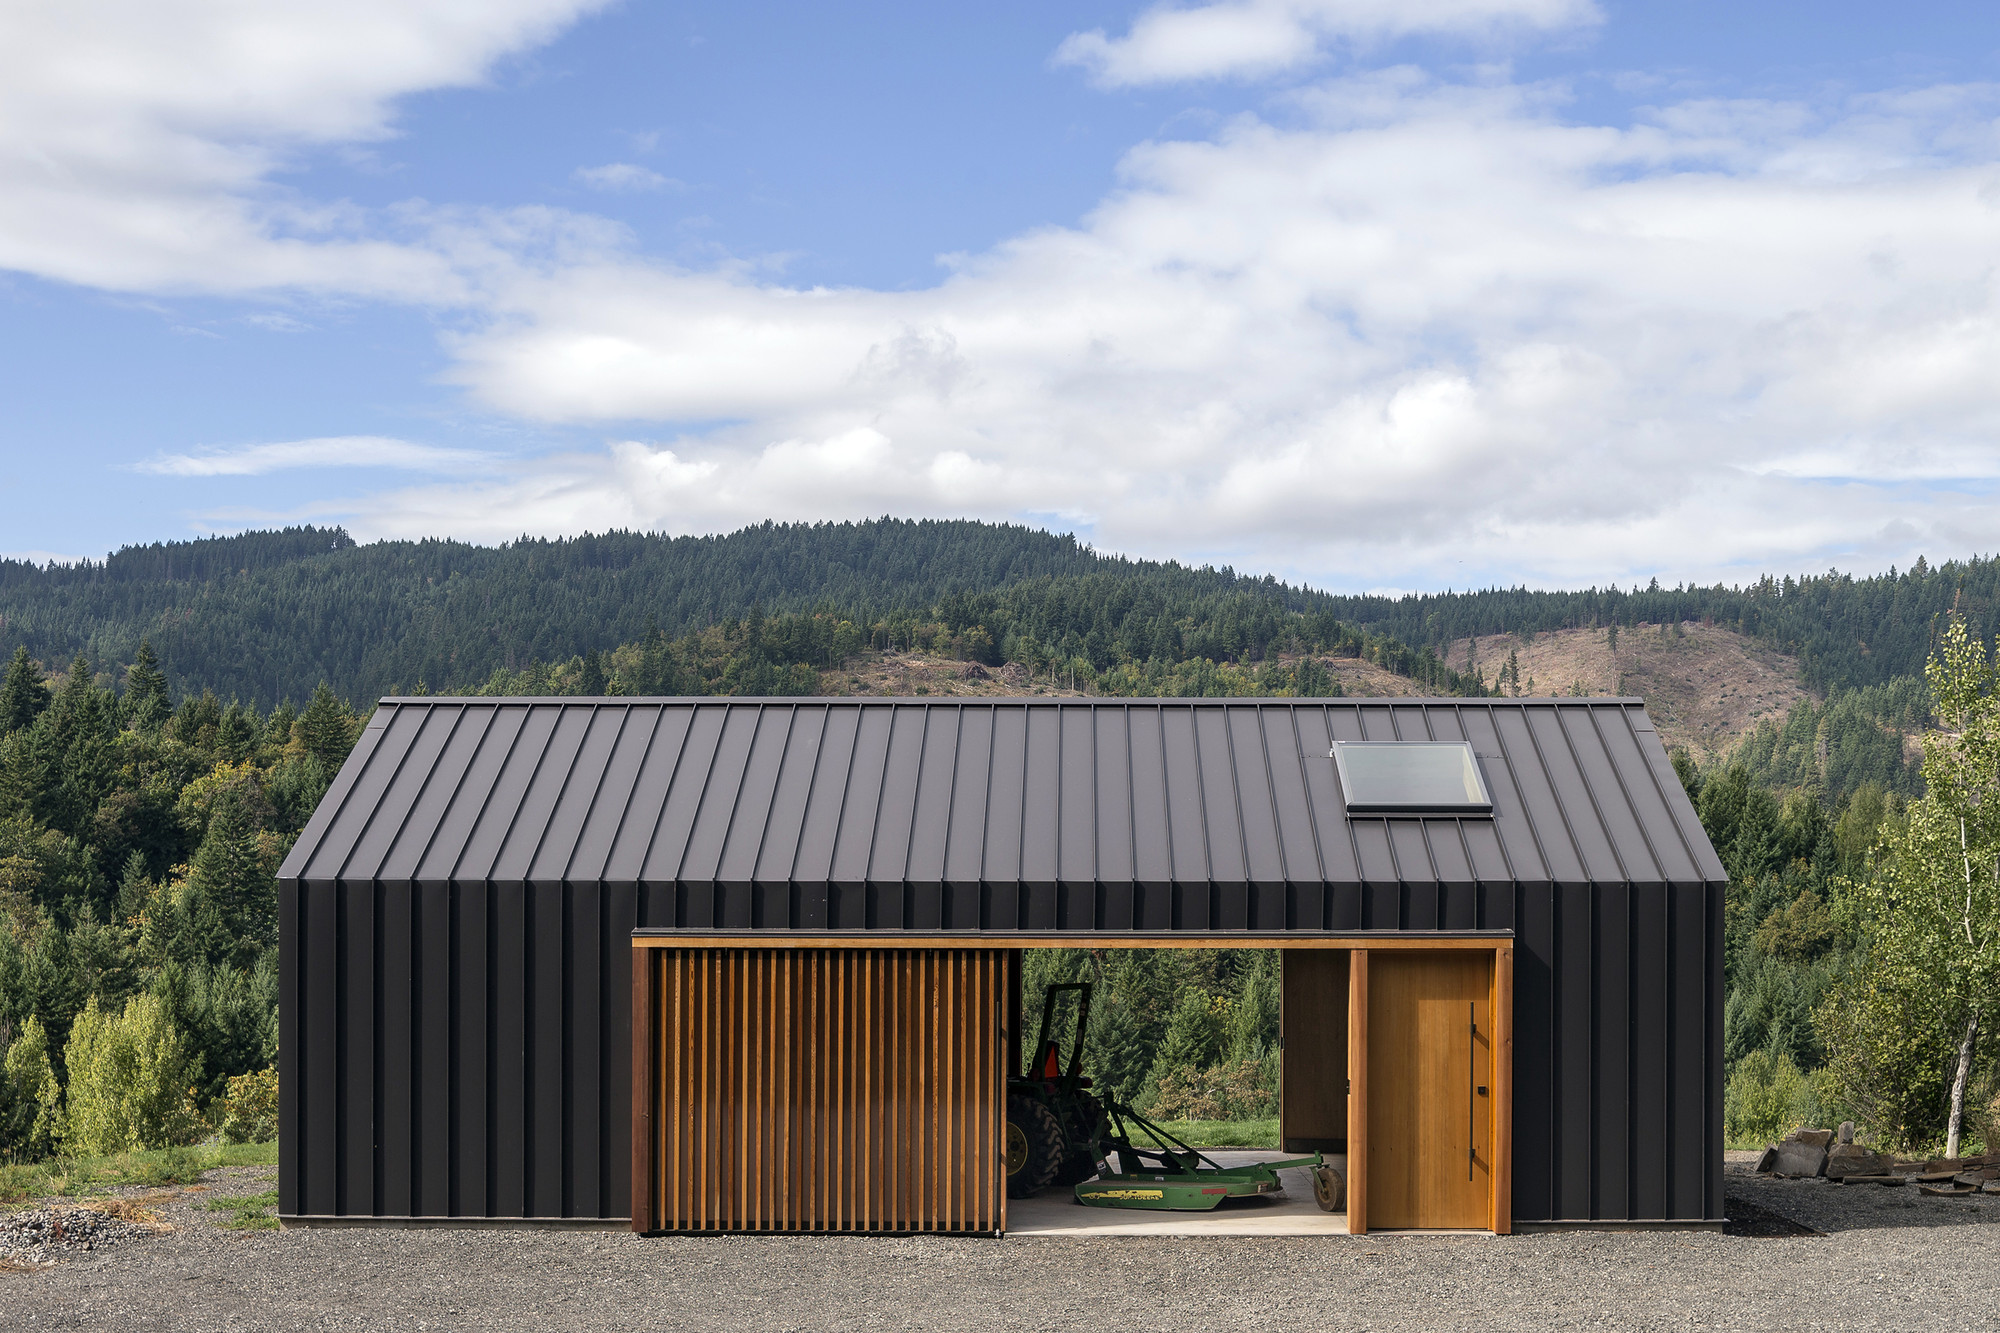 Elk valley tractor shed fieldwork design architecture Design shed